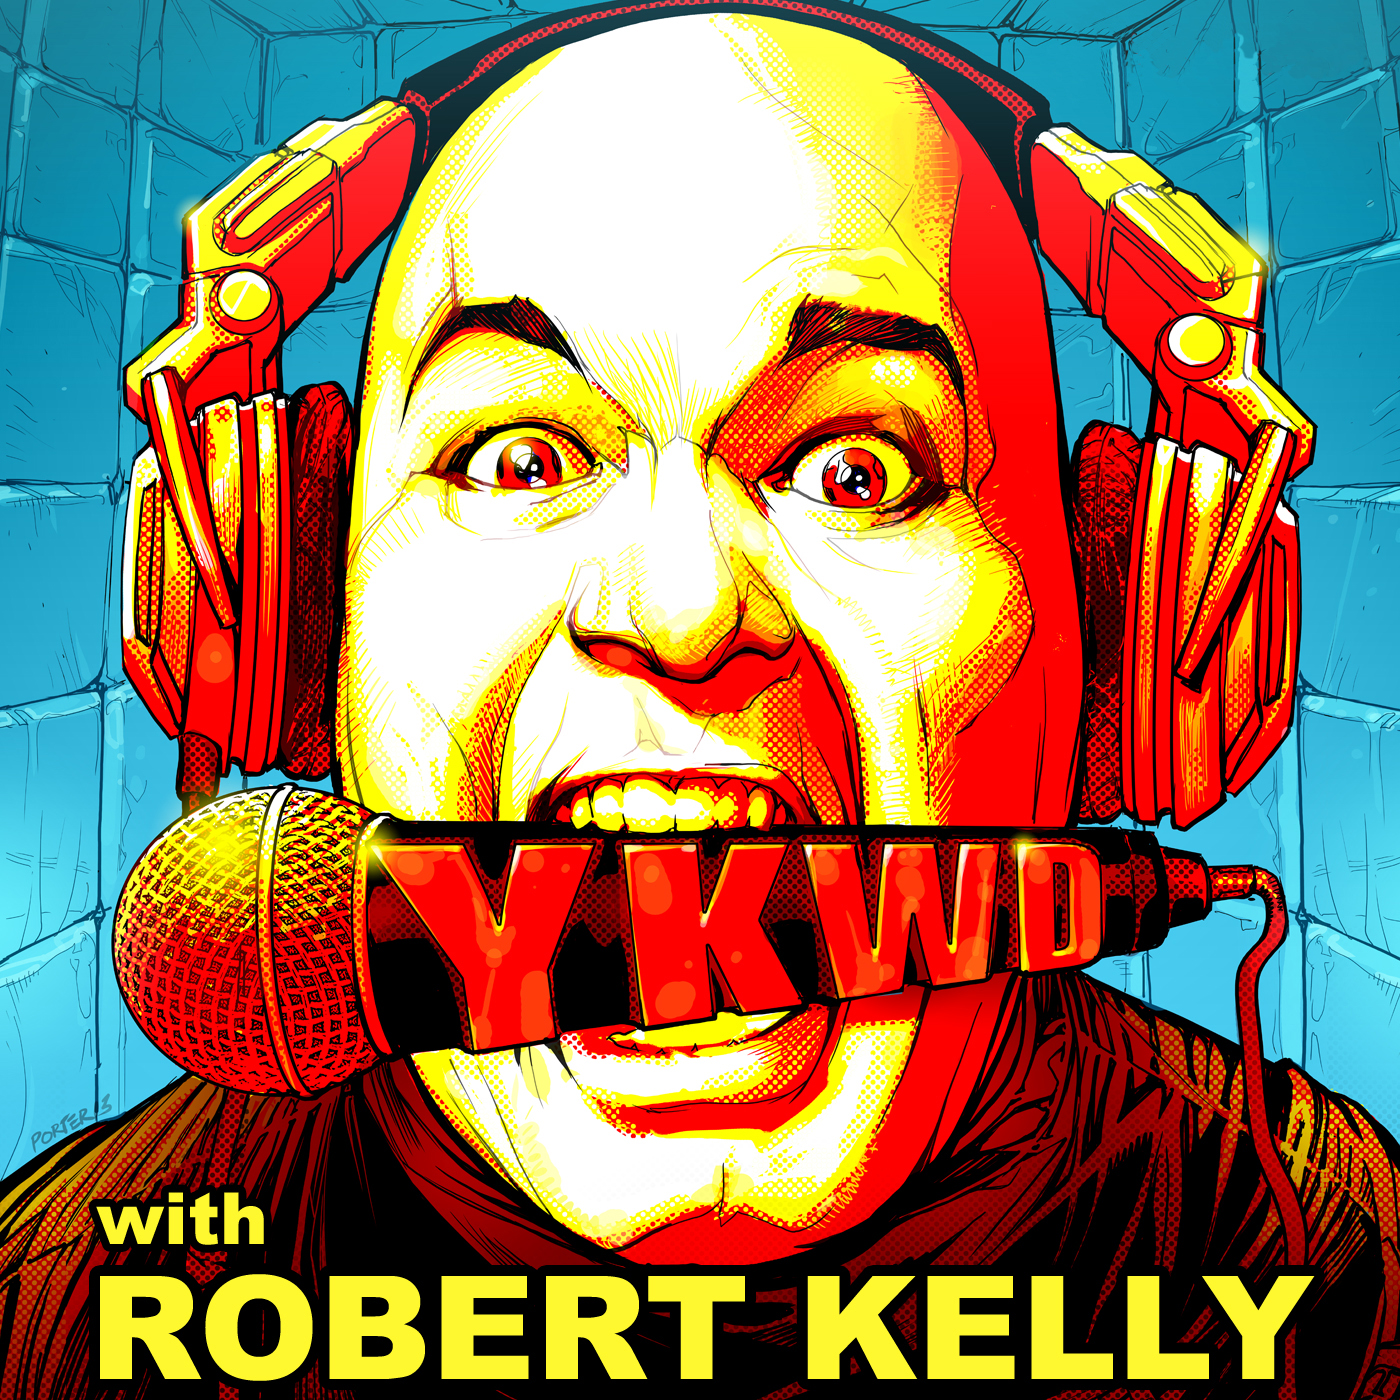 """Robert Kelly's """"You Know What Dude!"""""""